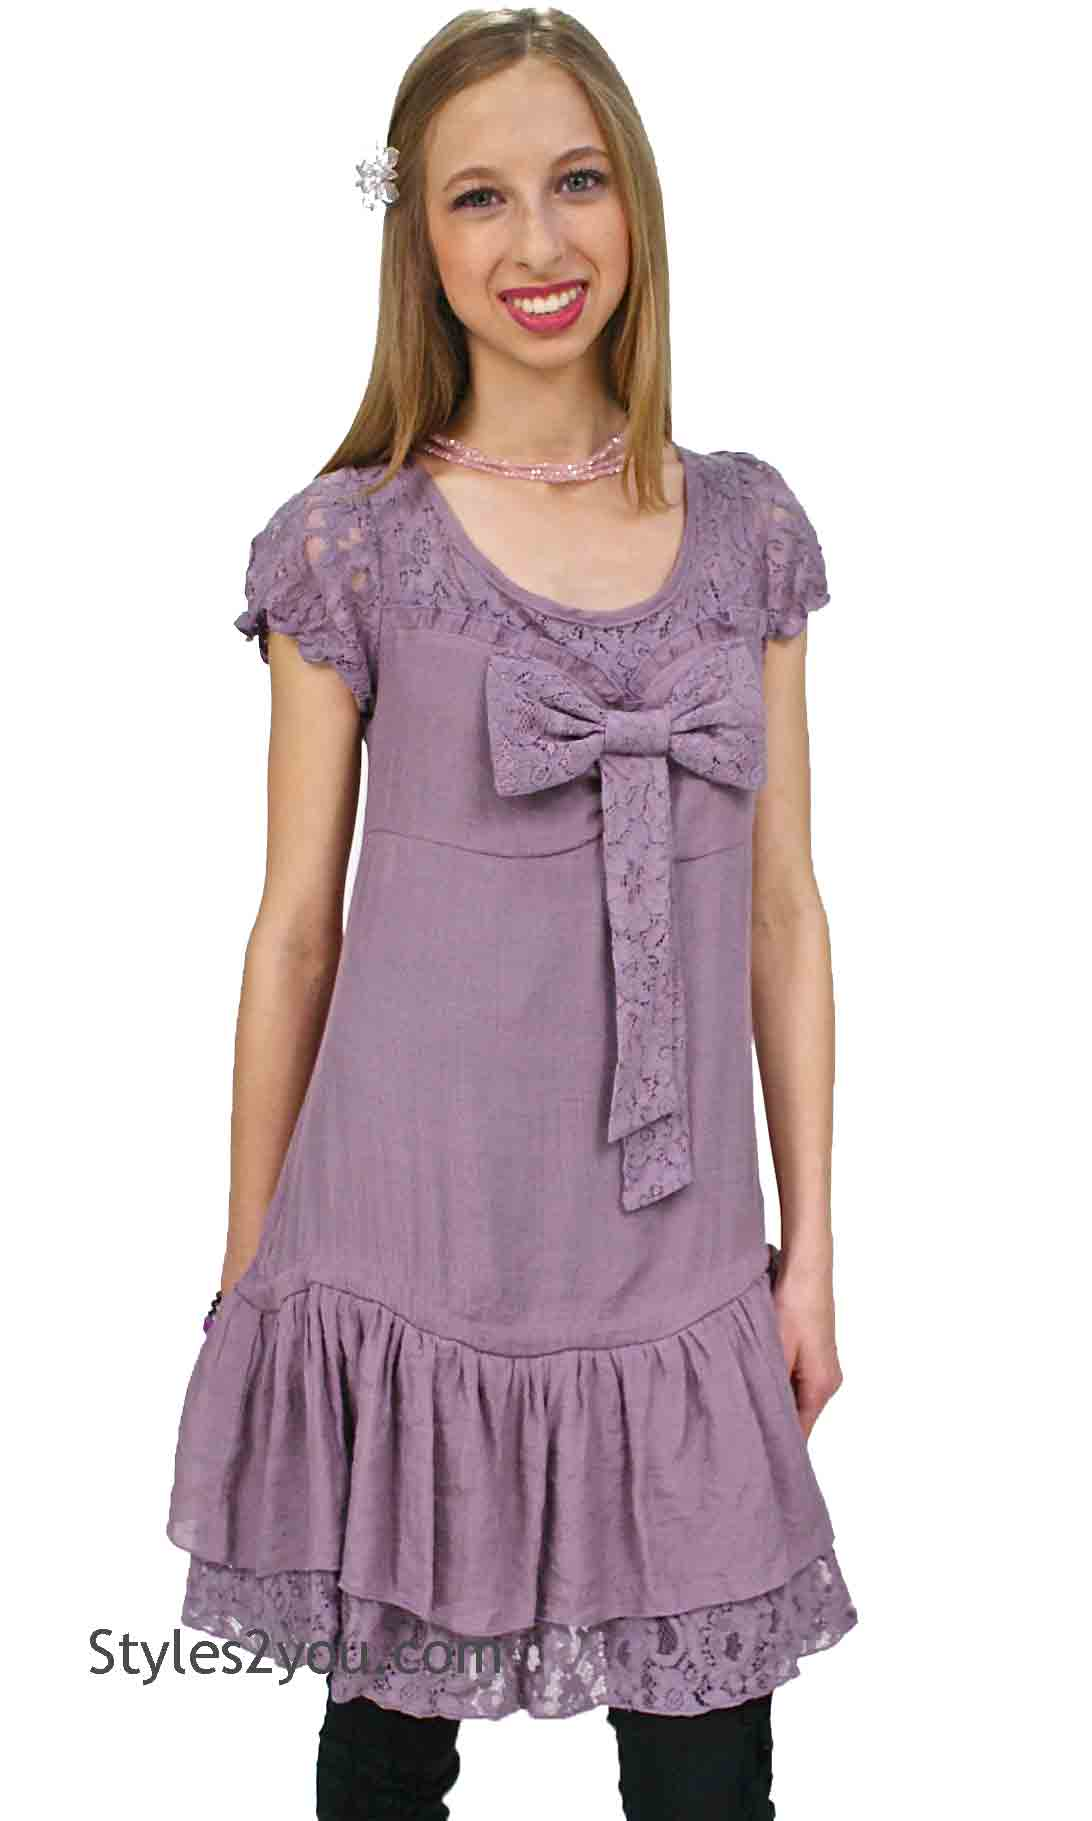 Daisy Modern Vintage Tunic In Purple A Reve Areve Clothing